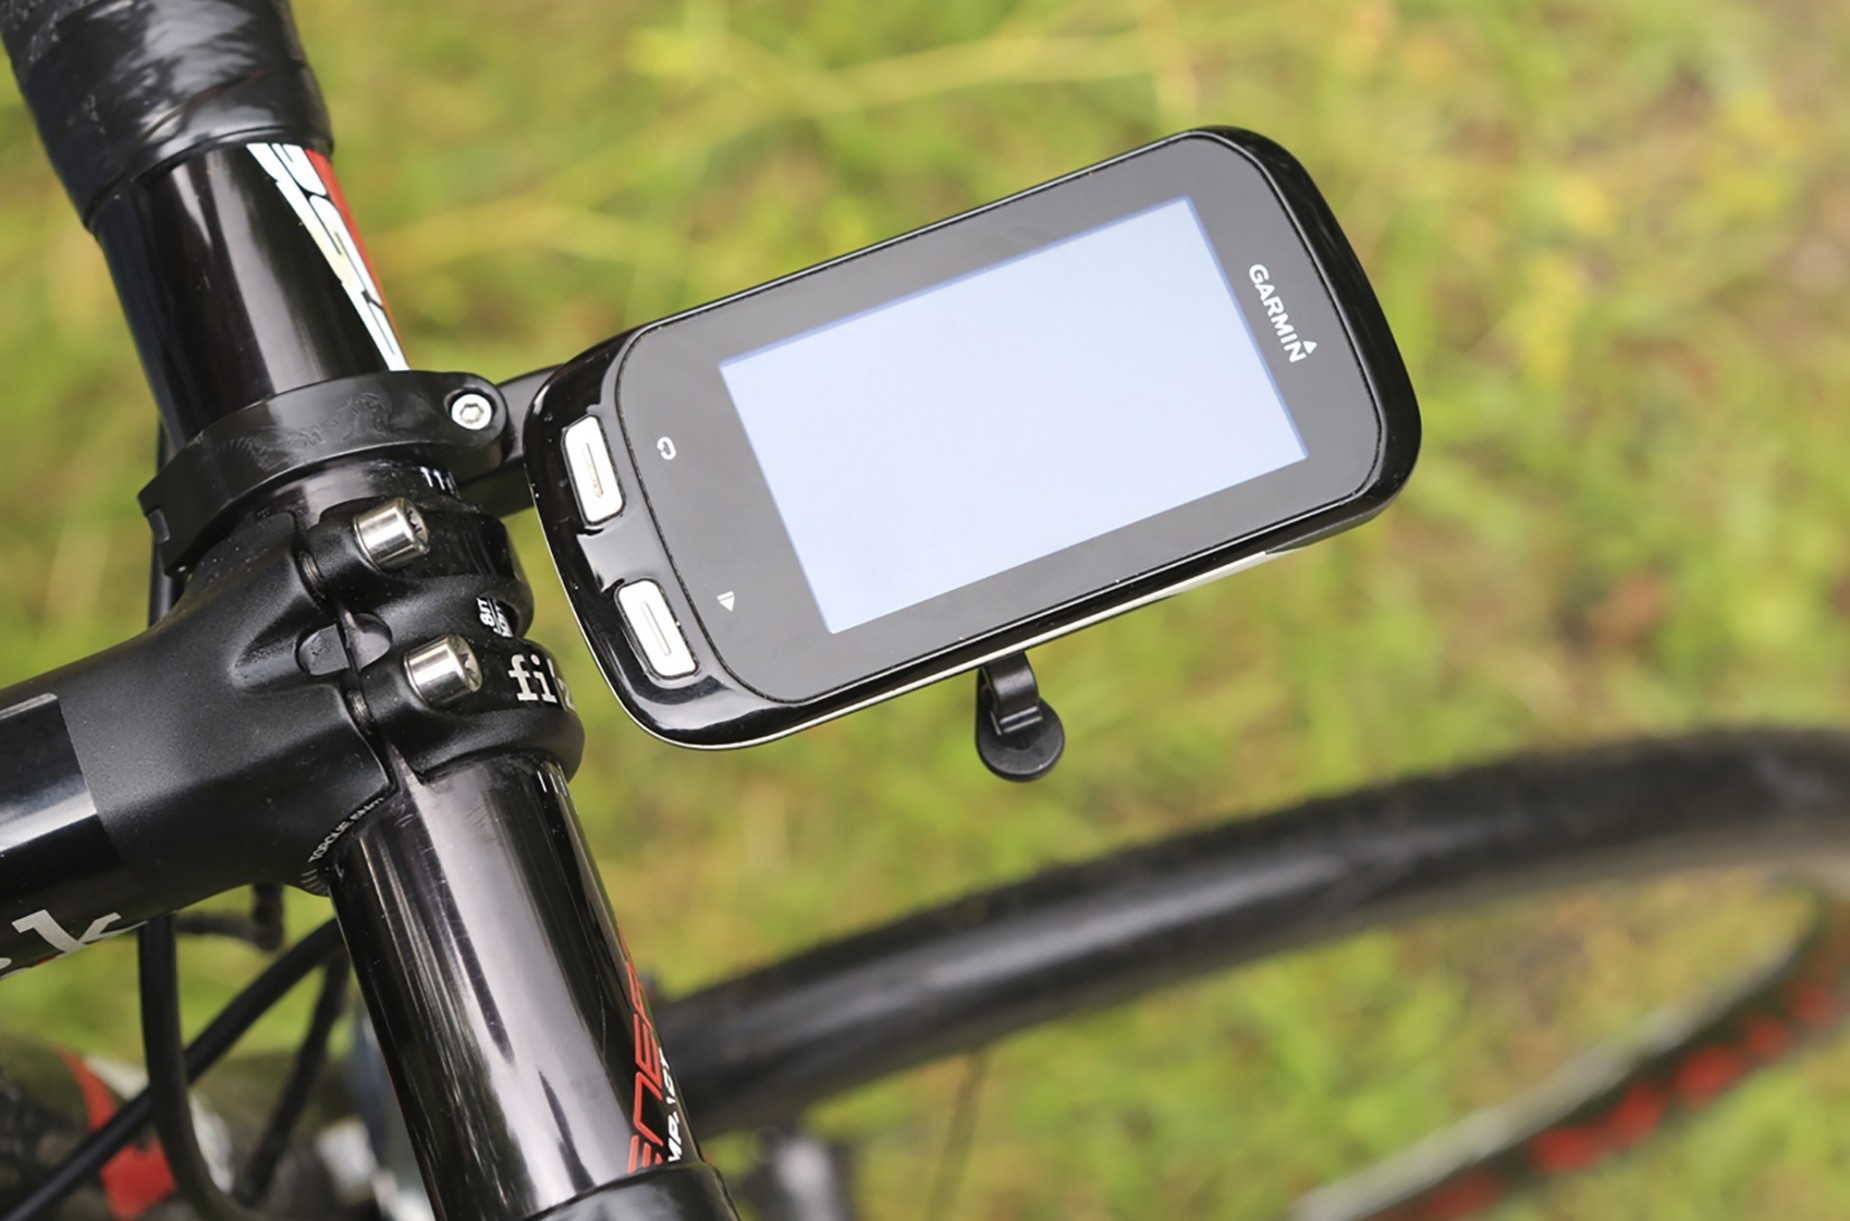 GPS on handlebars